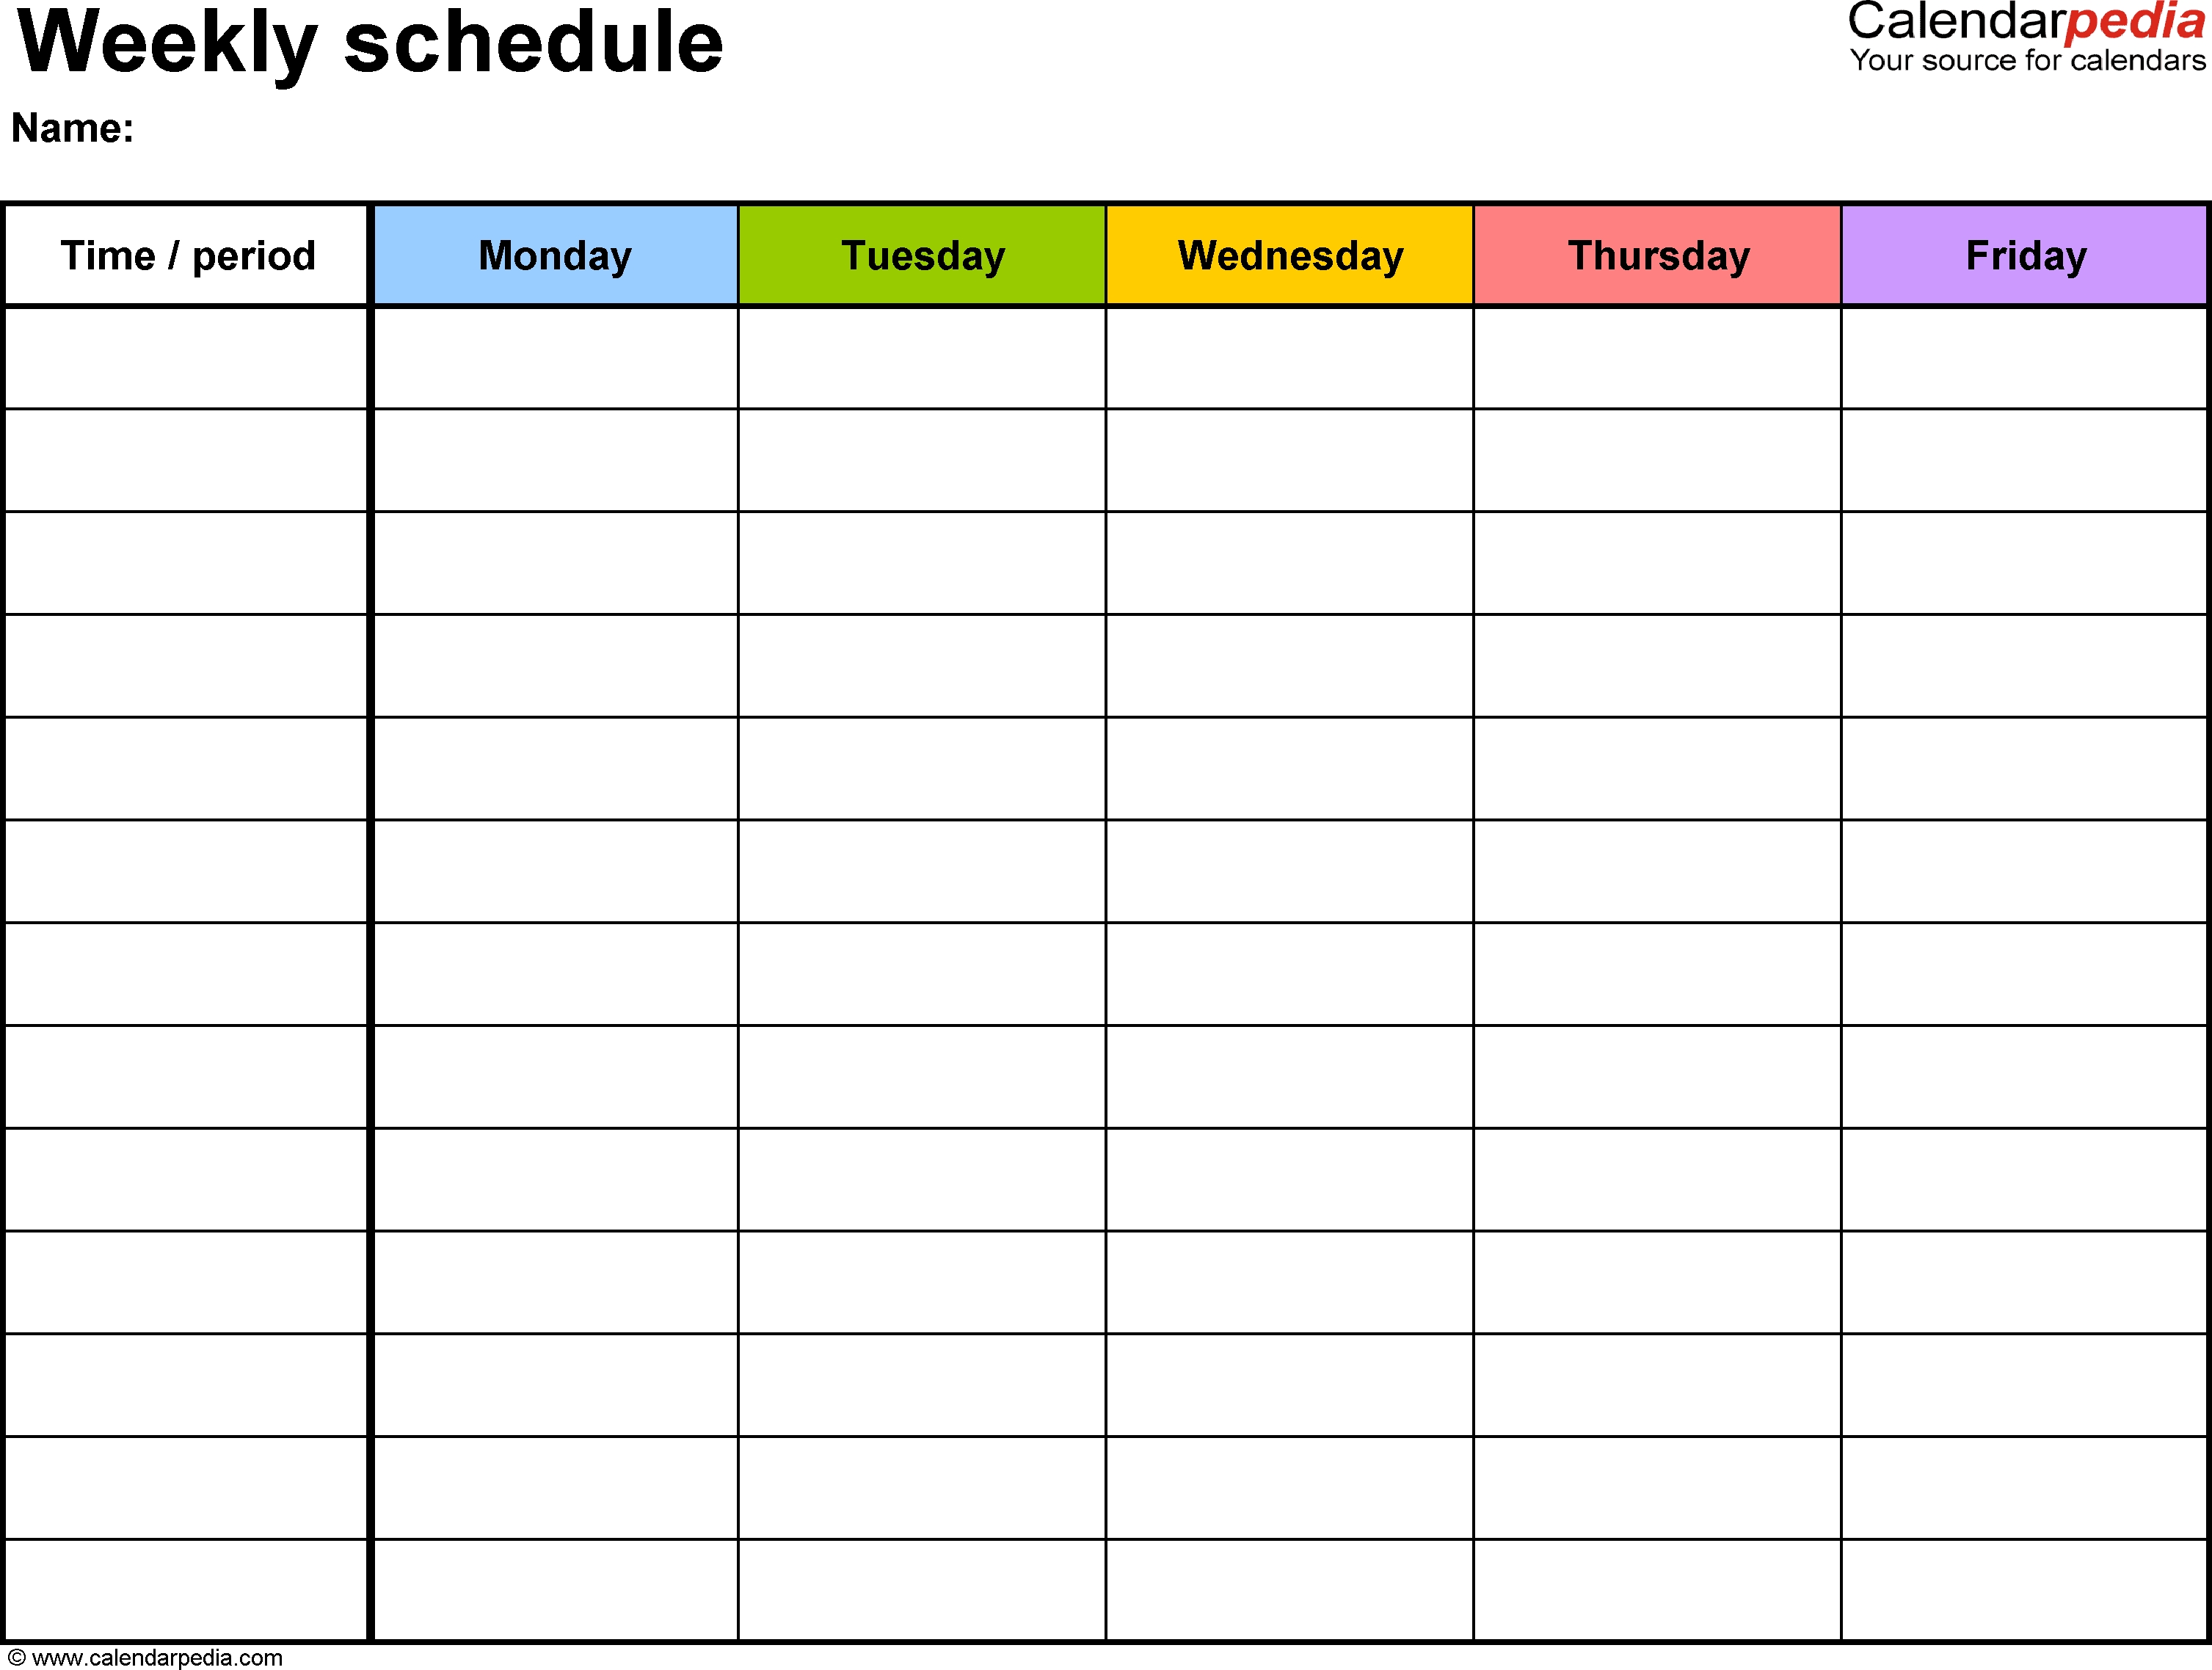 Free Weekly Schedule Templates For Excel - 18 Templates pertaining to Monday To Friday Timetable Excel